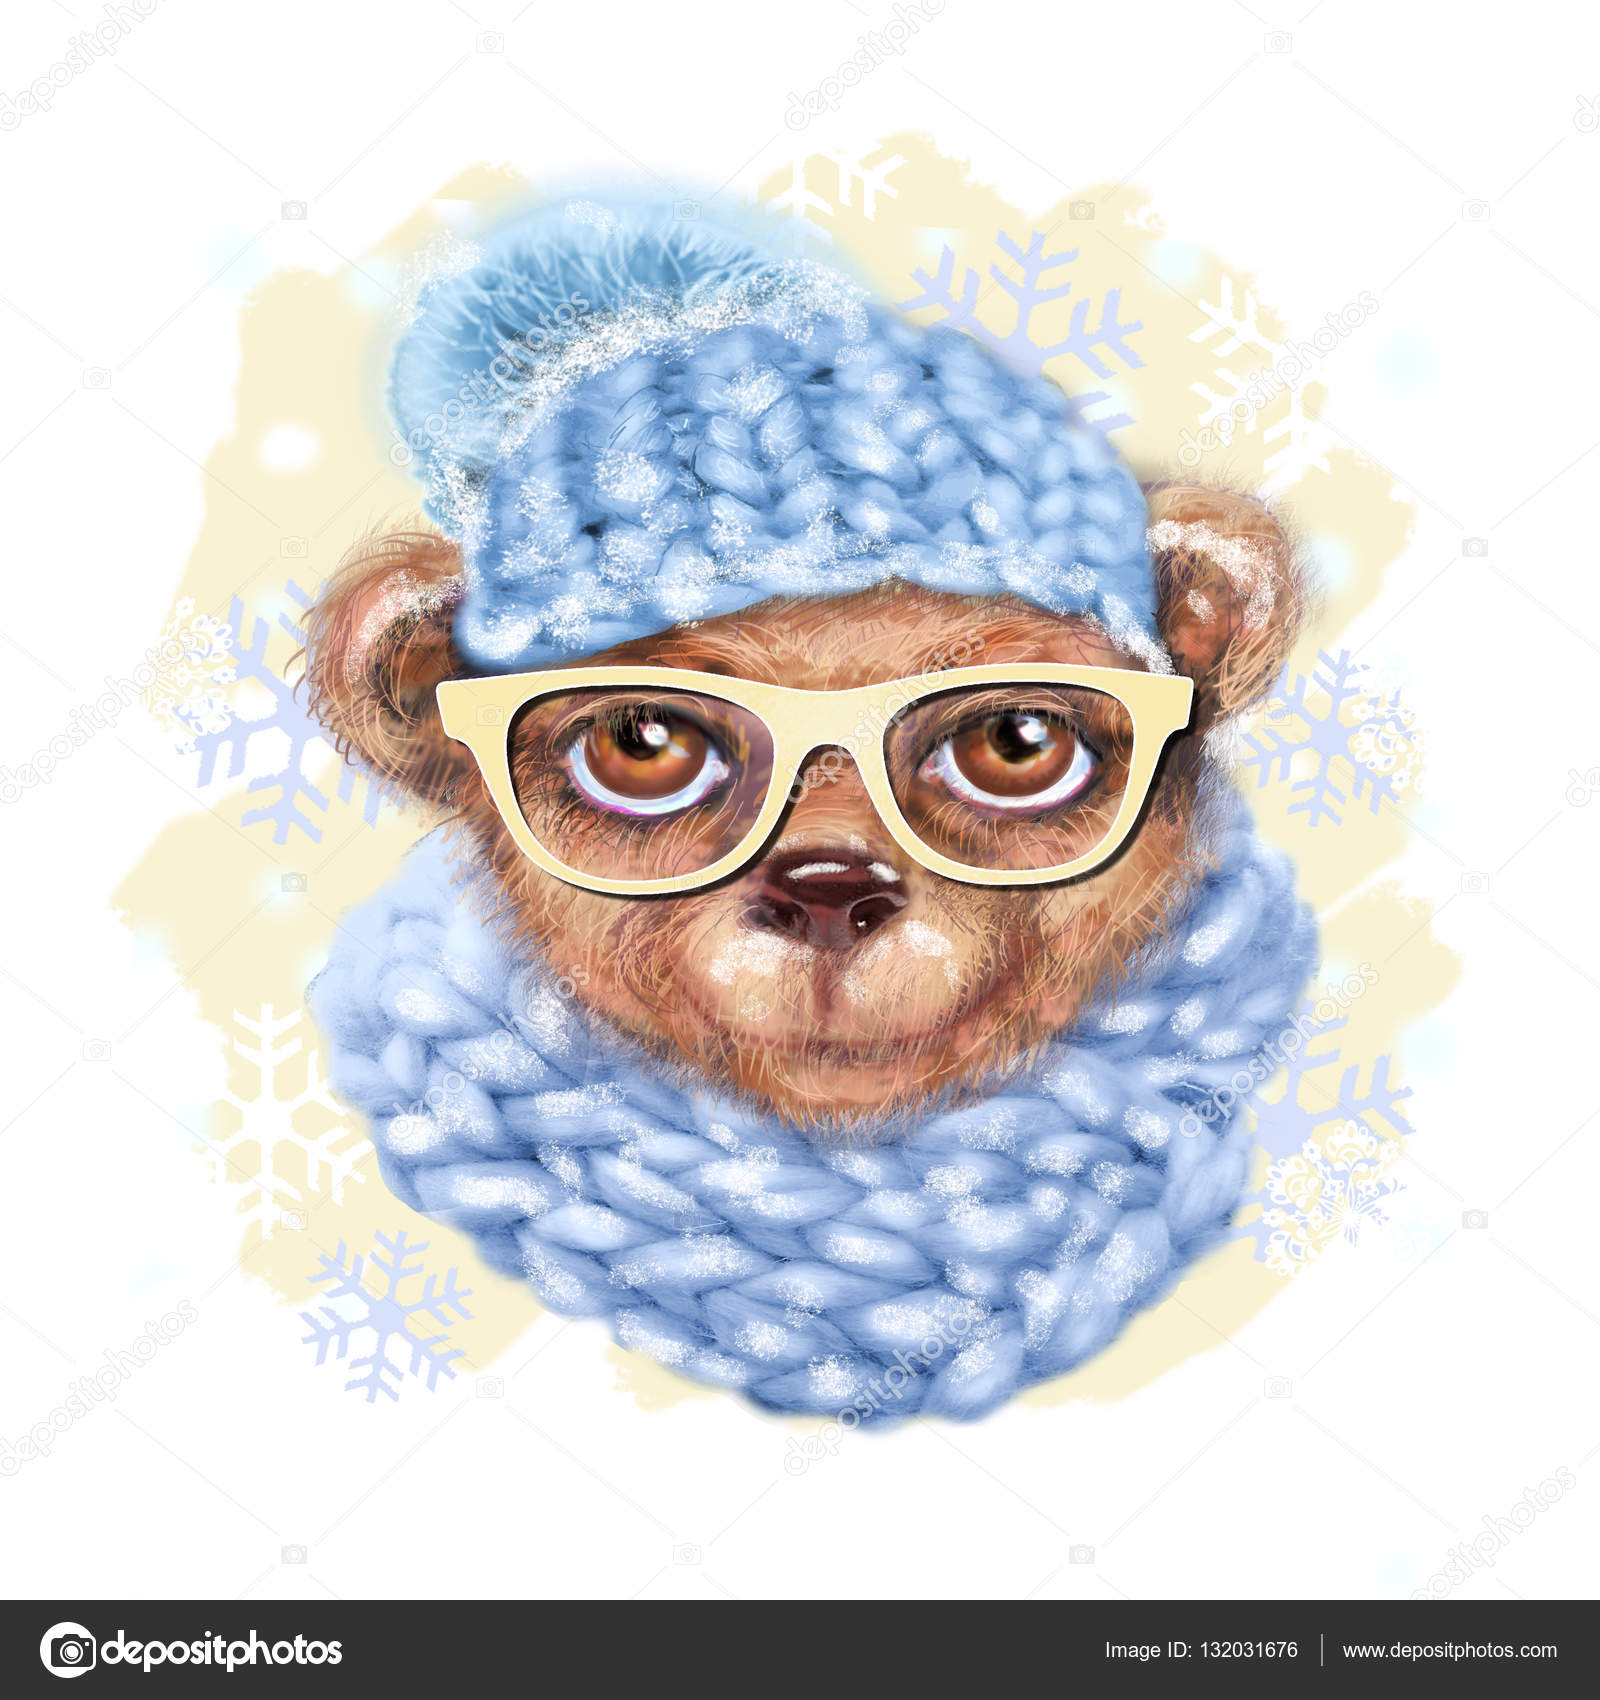 75d9e704b92 Hand drawn portrait of teddy bear with glasses